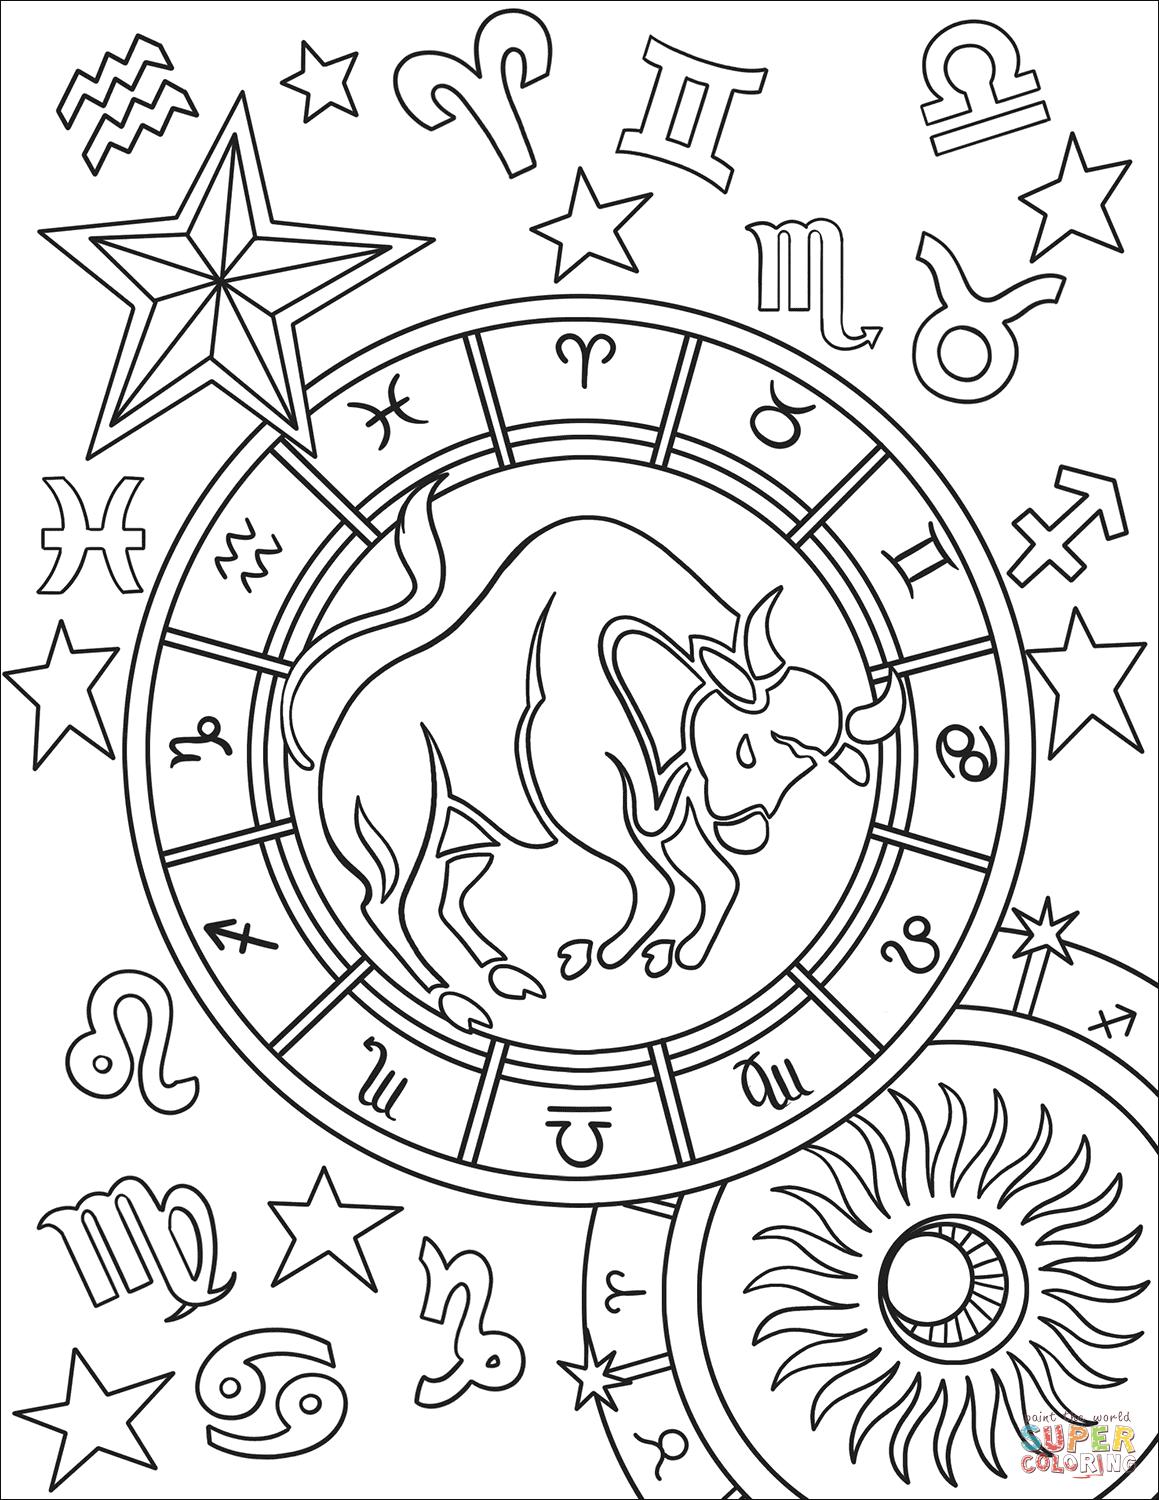 printable zodiac coloring pages capricorn zodiac sign coloring page free printable zodiac printable coloring pages